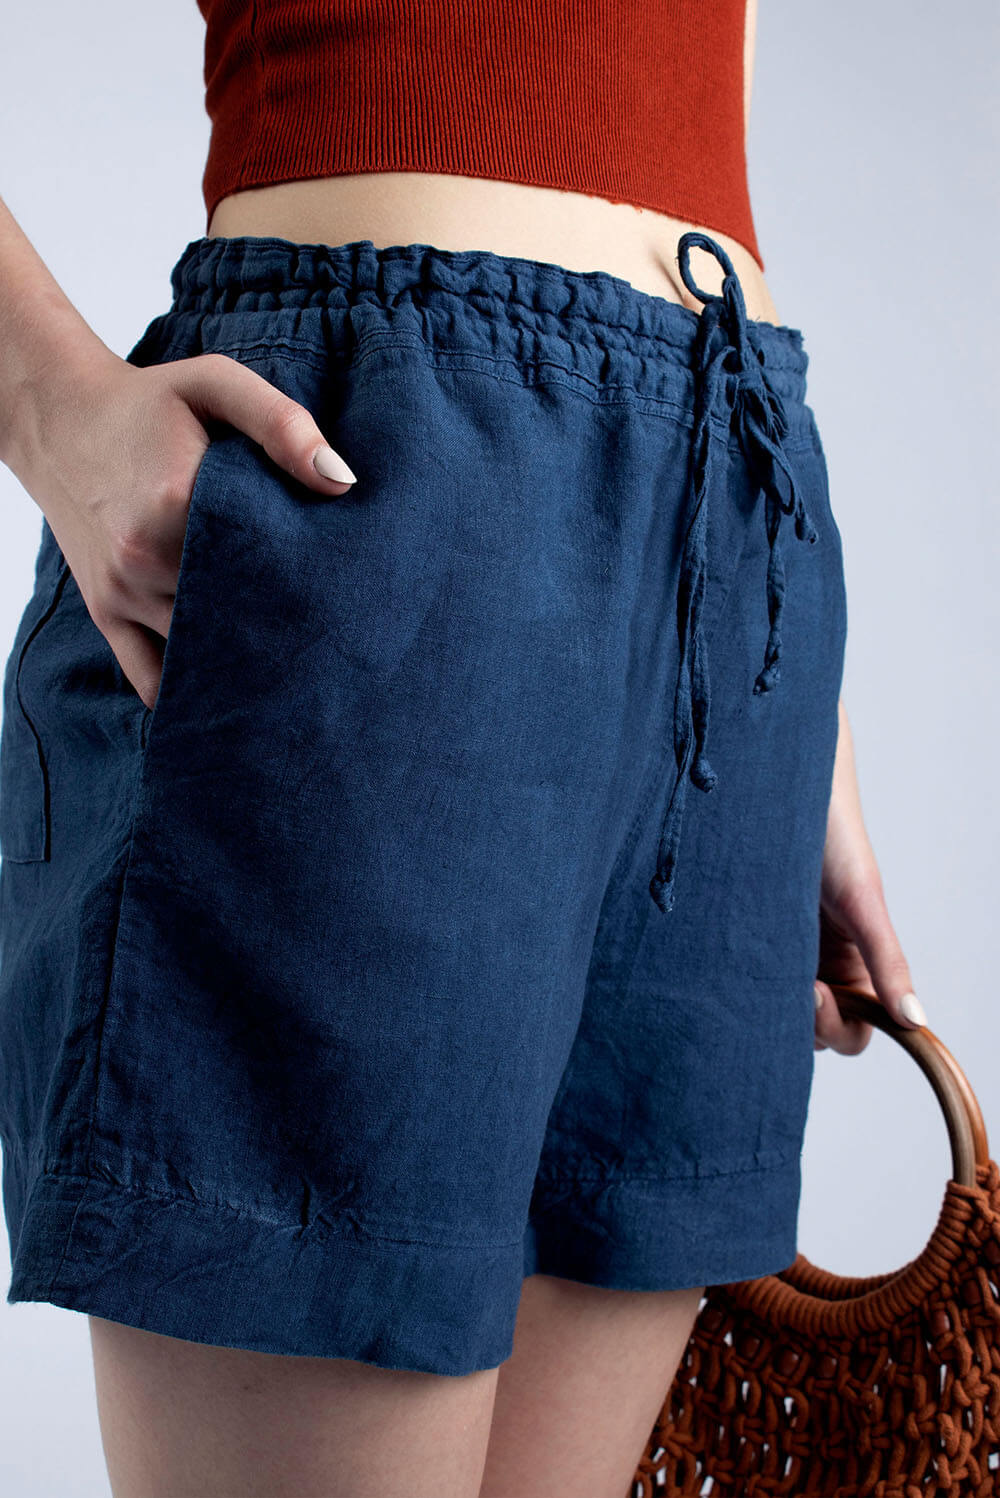 Jeans blue linen draw string shorts